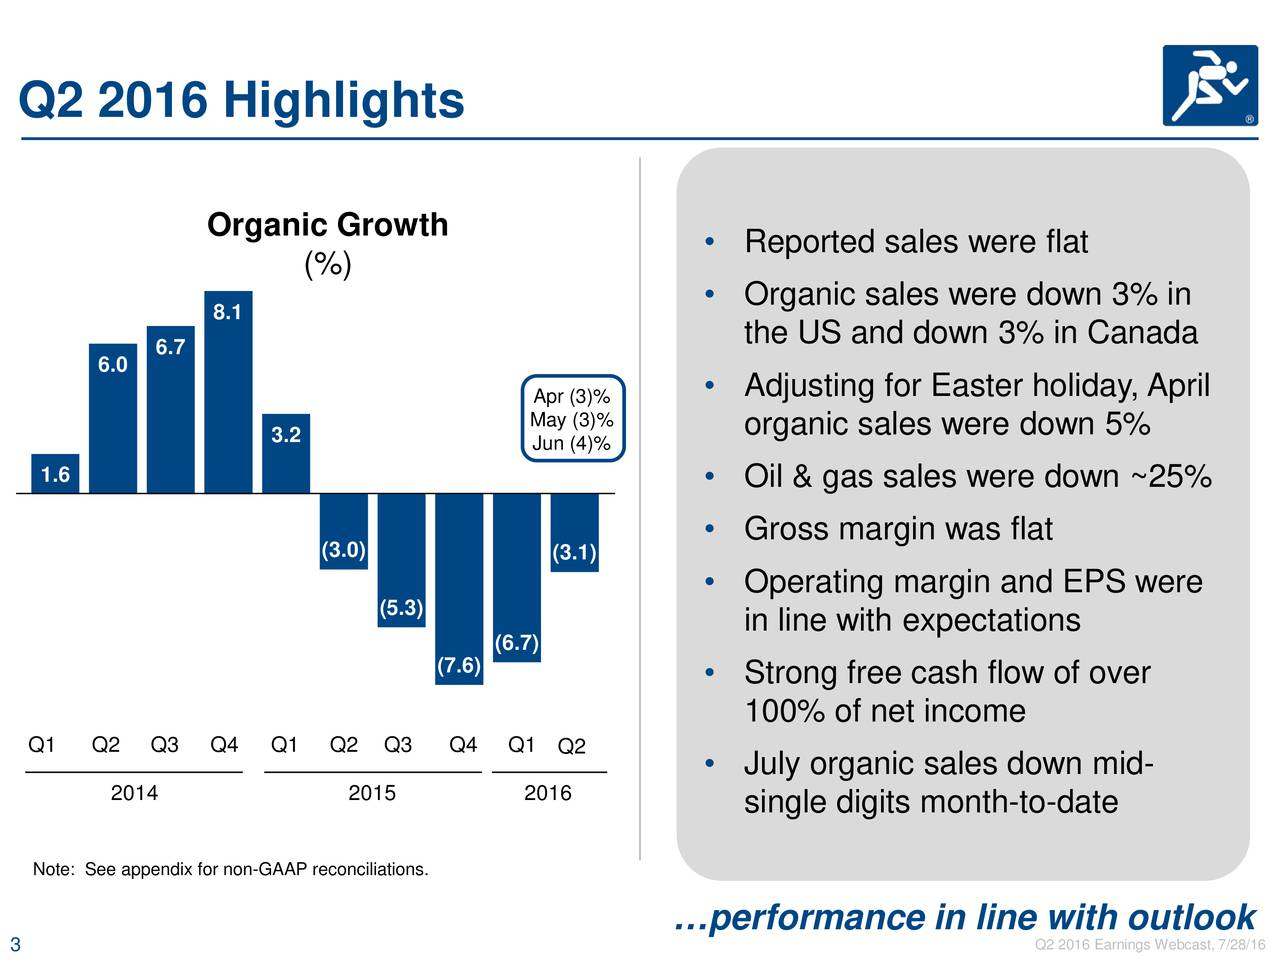 Organic Growth Reported sales were flat (%) Organic sales were down 3% in 8.1 6.7 the US and down 3% in Canada 6.0 Apr (3)%  Adjusting for Easter holiday, April 3.2 May (3)% organic sales were down 5% Jun (4)% 1.6  Oil & gas sales were down ~25% Gross margin was flat (3.0) (3.1) Operating margin and EPS were (5.3) in line with expectations (6.7) (7.6)  Strong free cash flow of over 100% of net income Q1 Q2 Q3 Q4 Q1 Q2 Q3 Q4 Q1 Q2 July organic sales down mid- 2014 2015 2016 single digits month-to-date Note: See appendix for non-GAAP reconciliations. performance in line with outlook